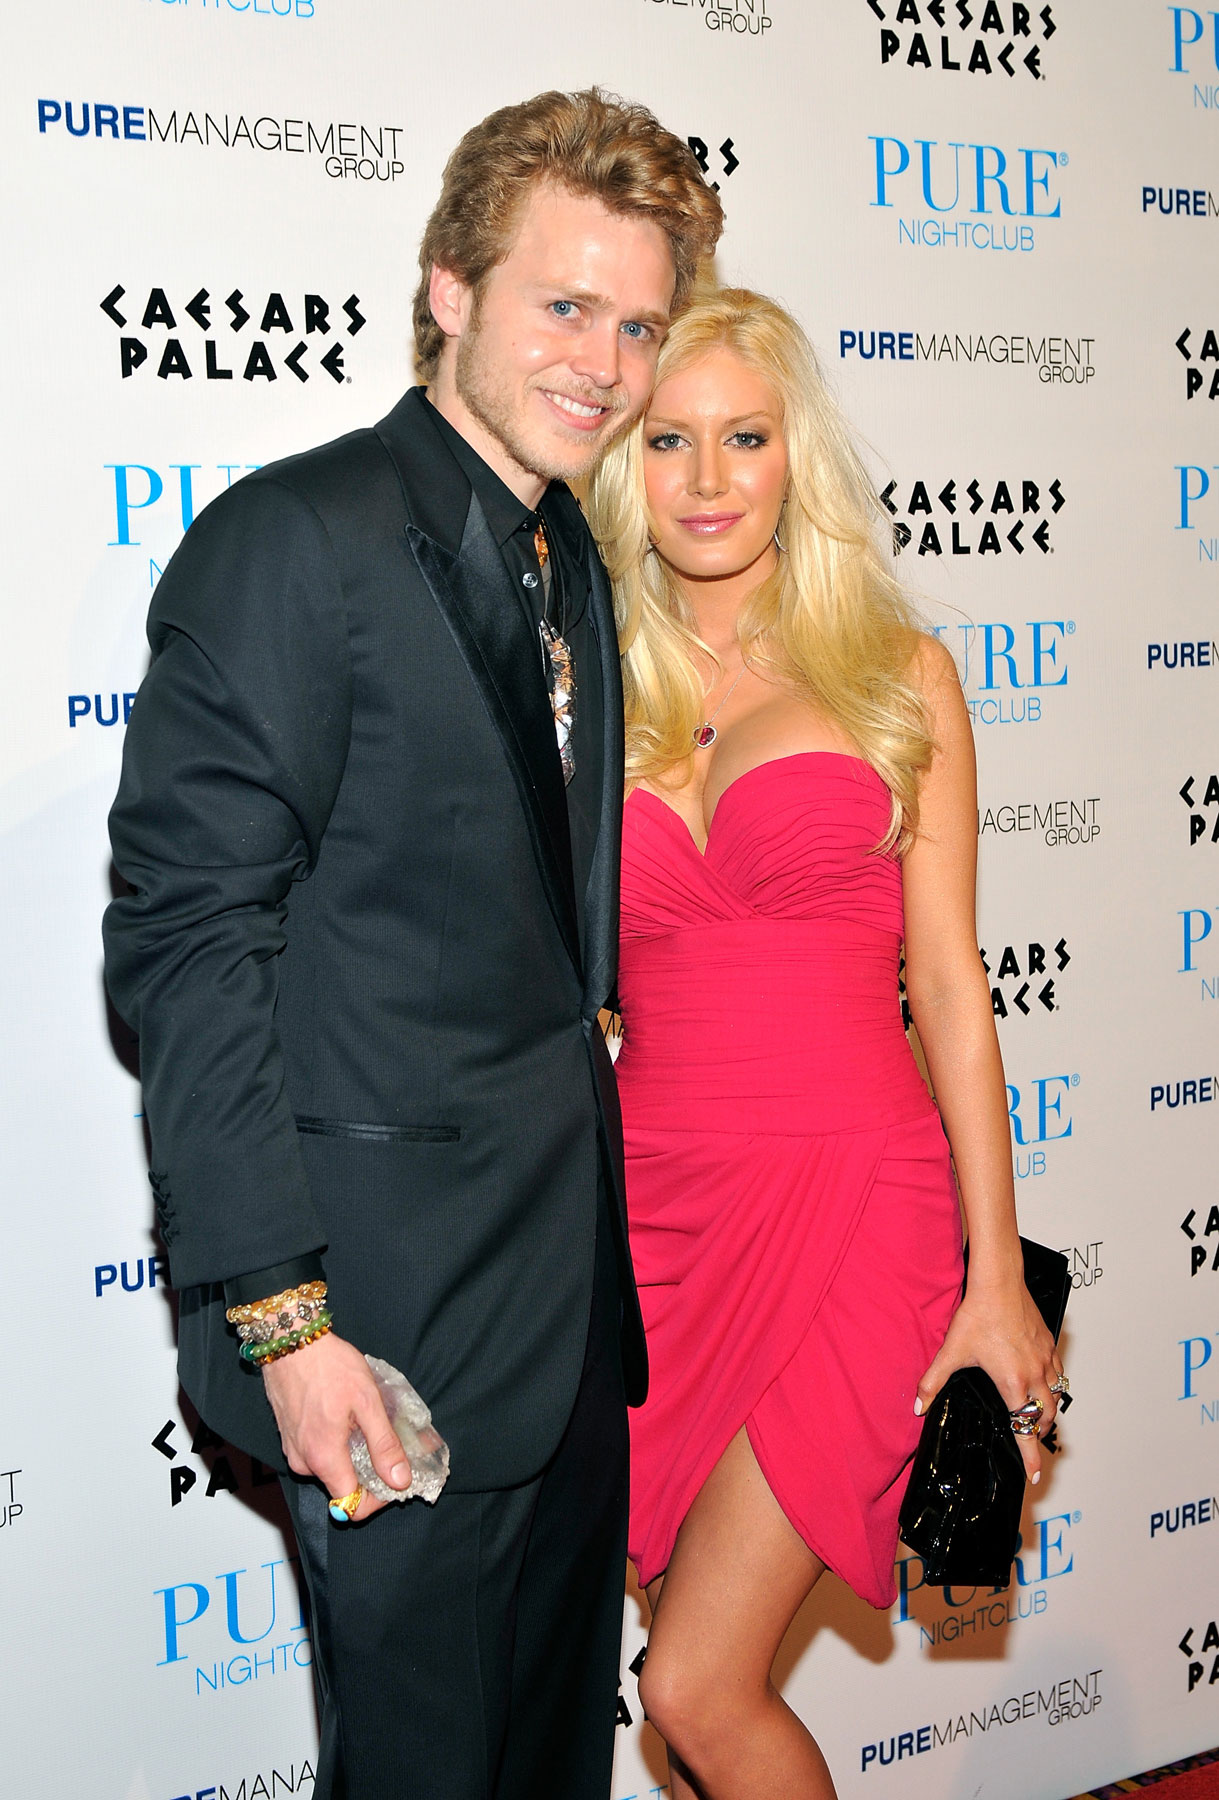 Heidi Montag and Spencer Pratt Get Re-Married-photo